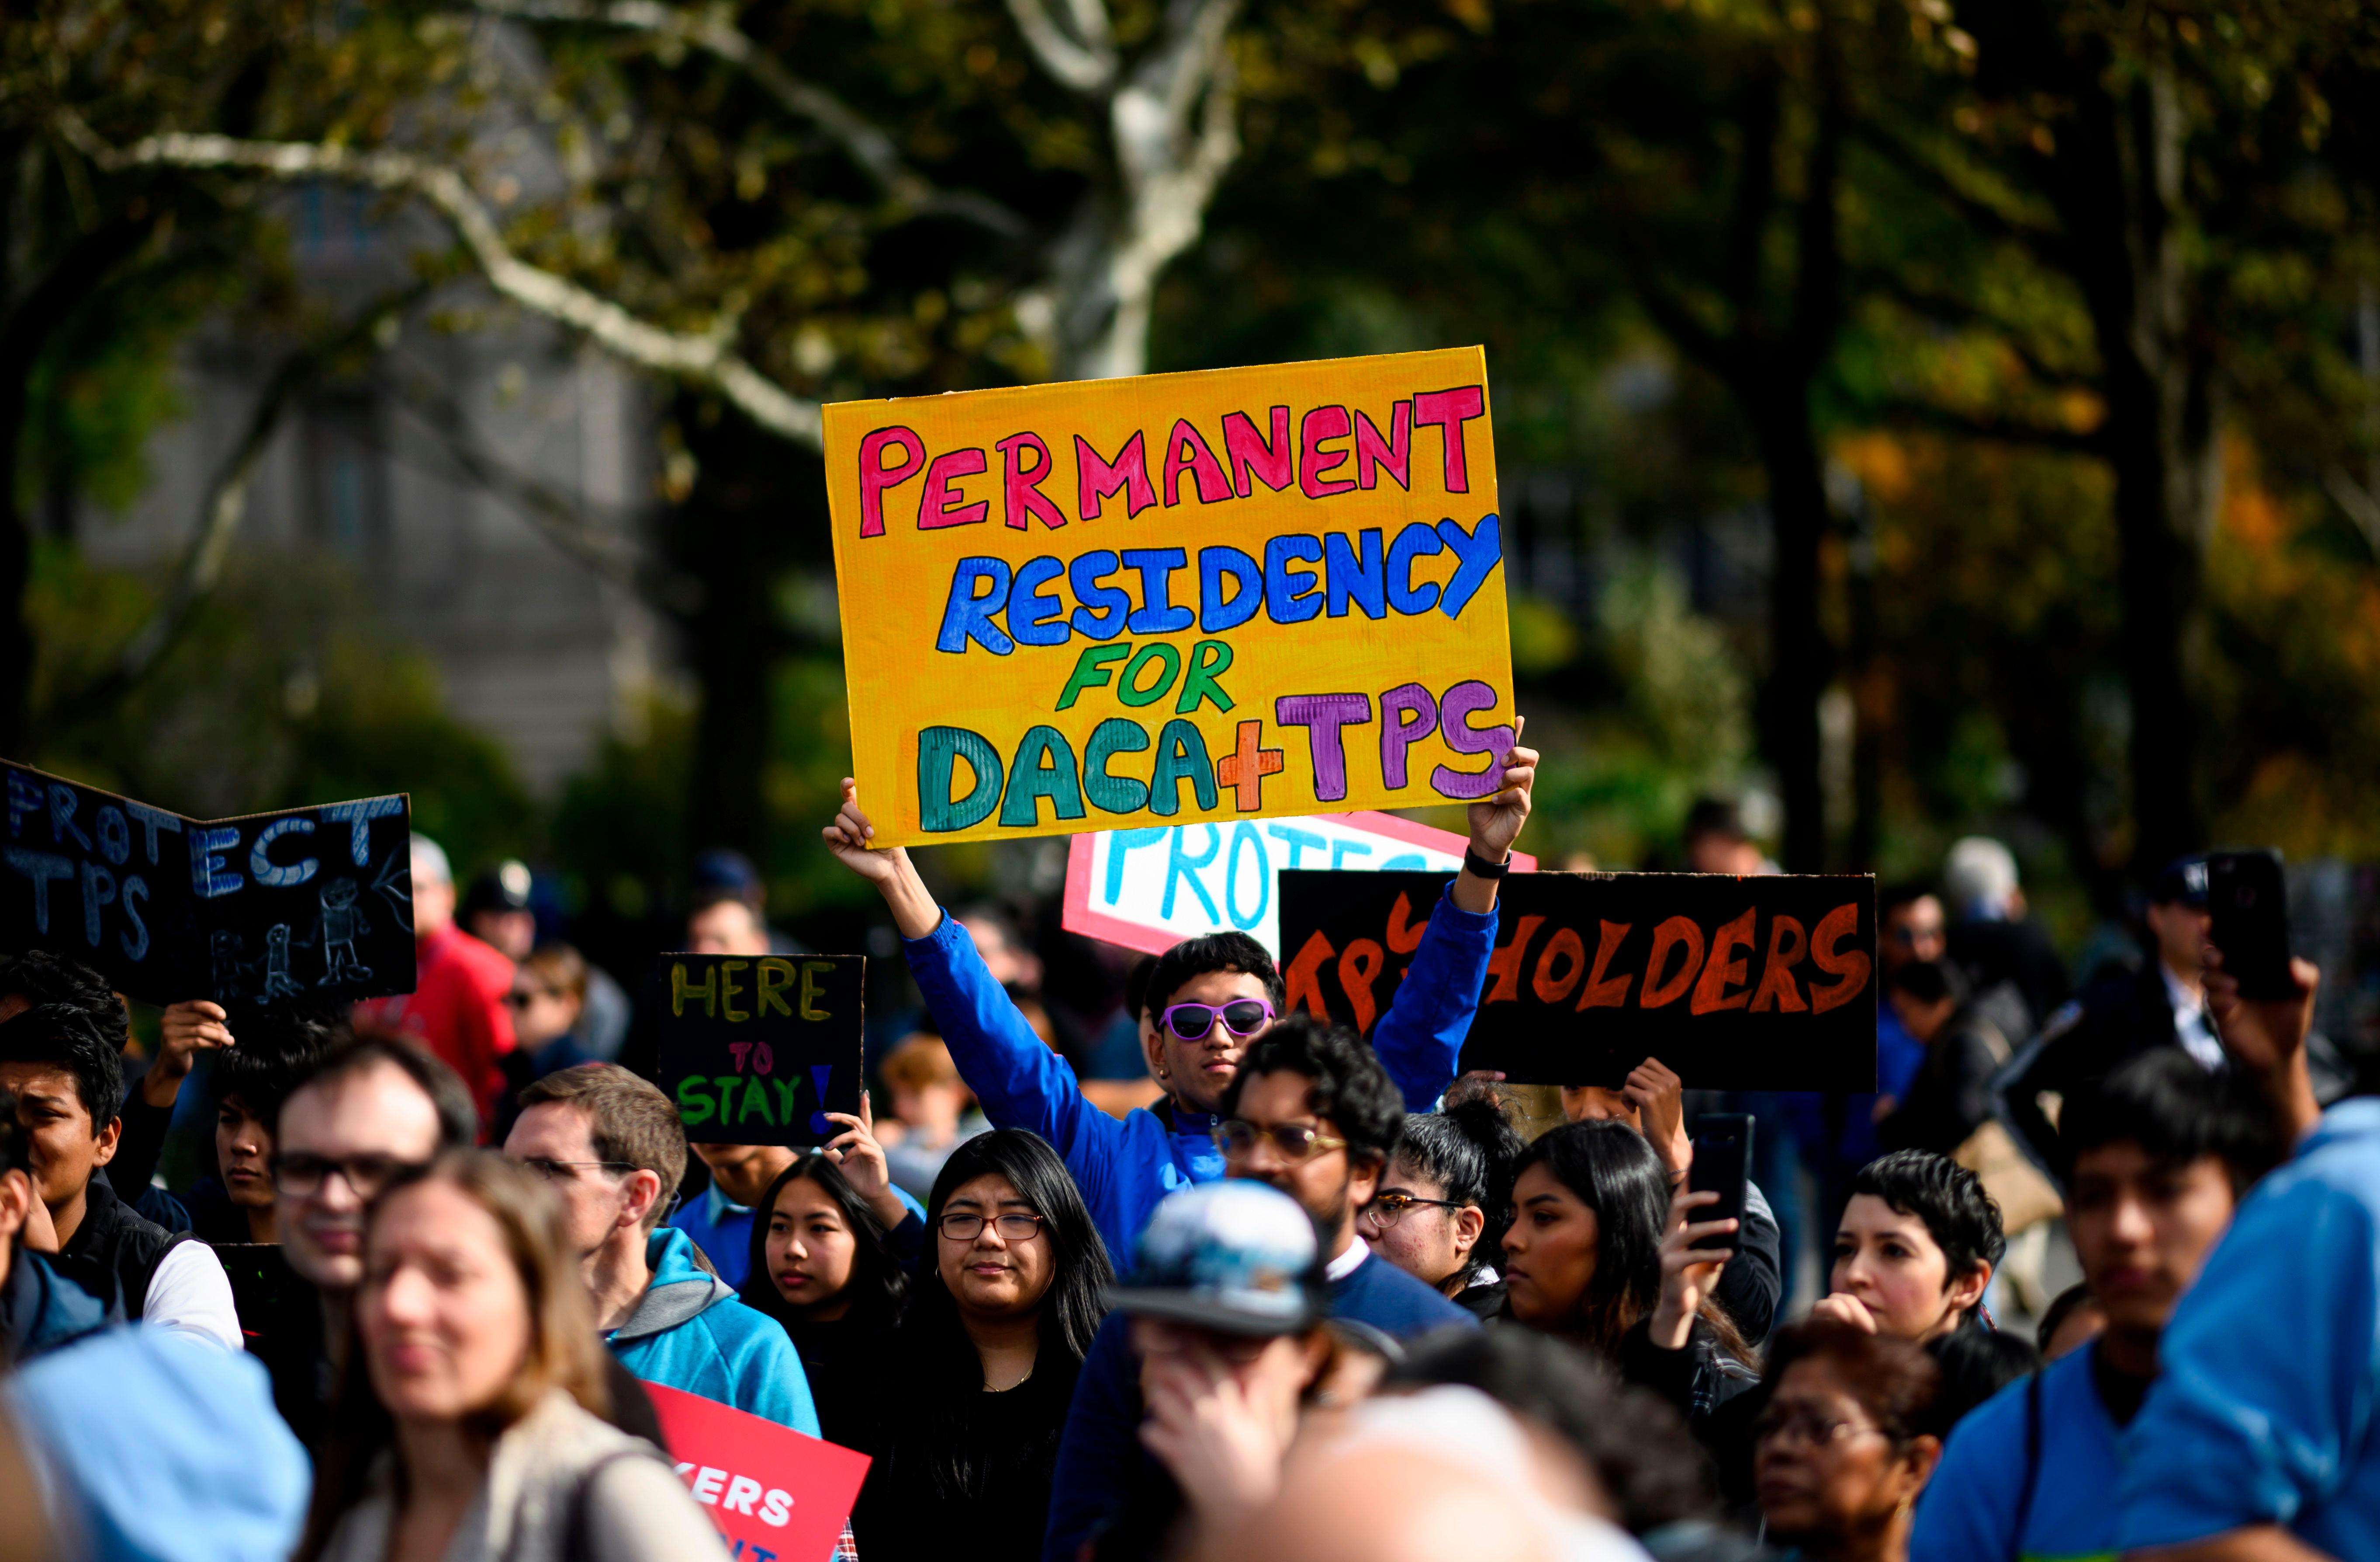 Dreamers prepare for fight as Daca decision heads to supreme court